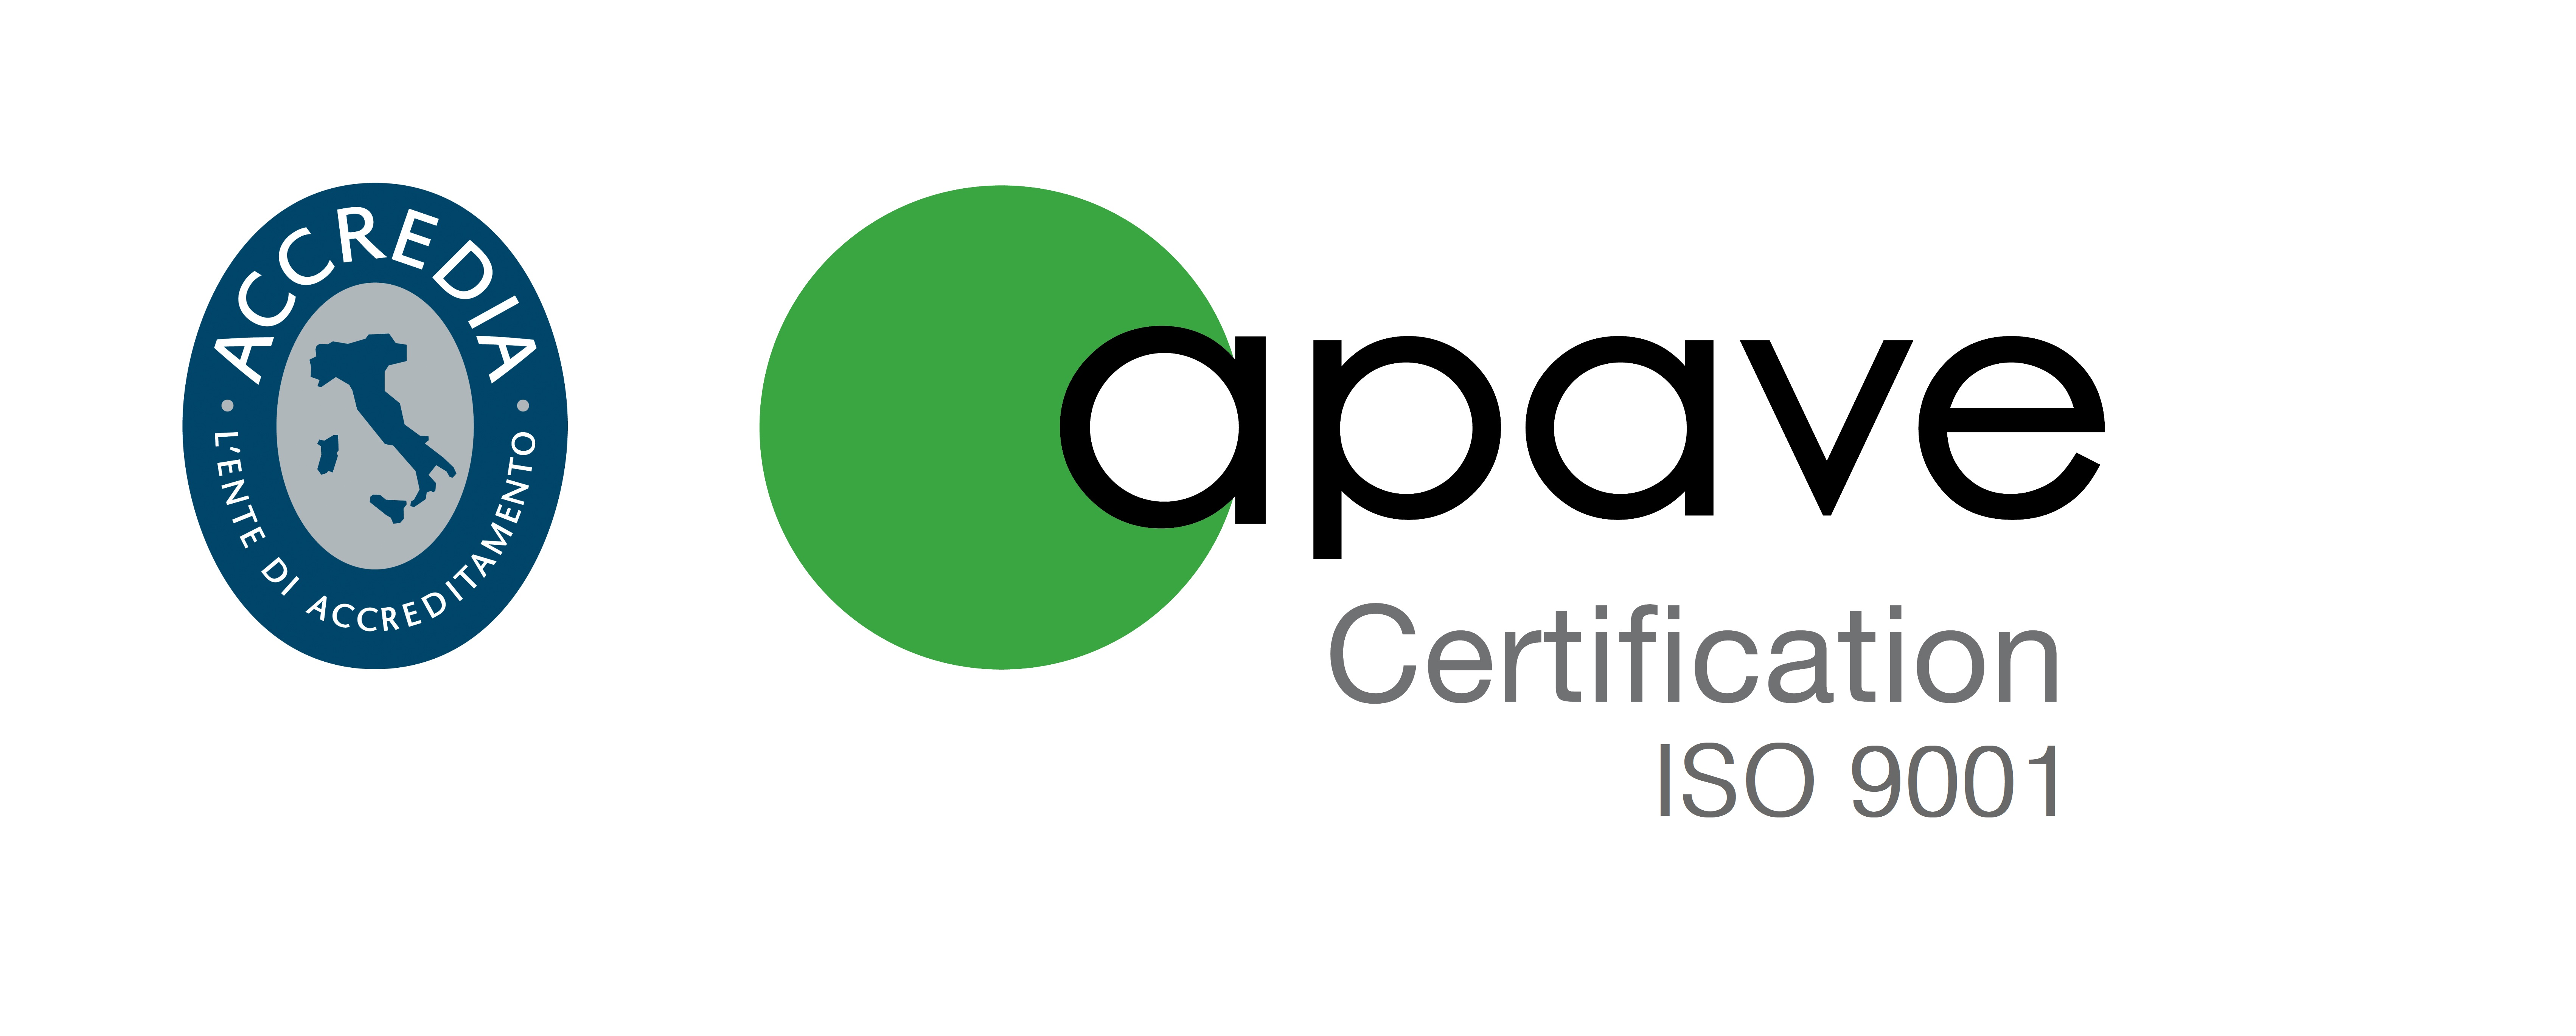 Apave certification italia ISO 9001 Accredia